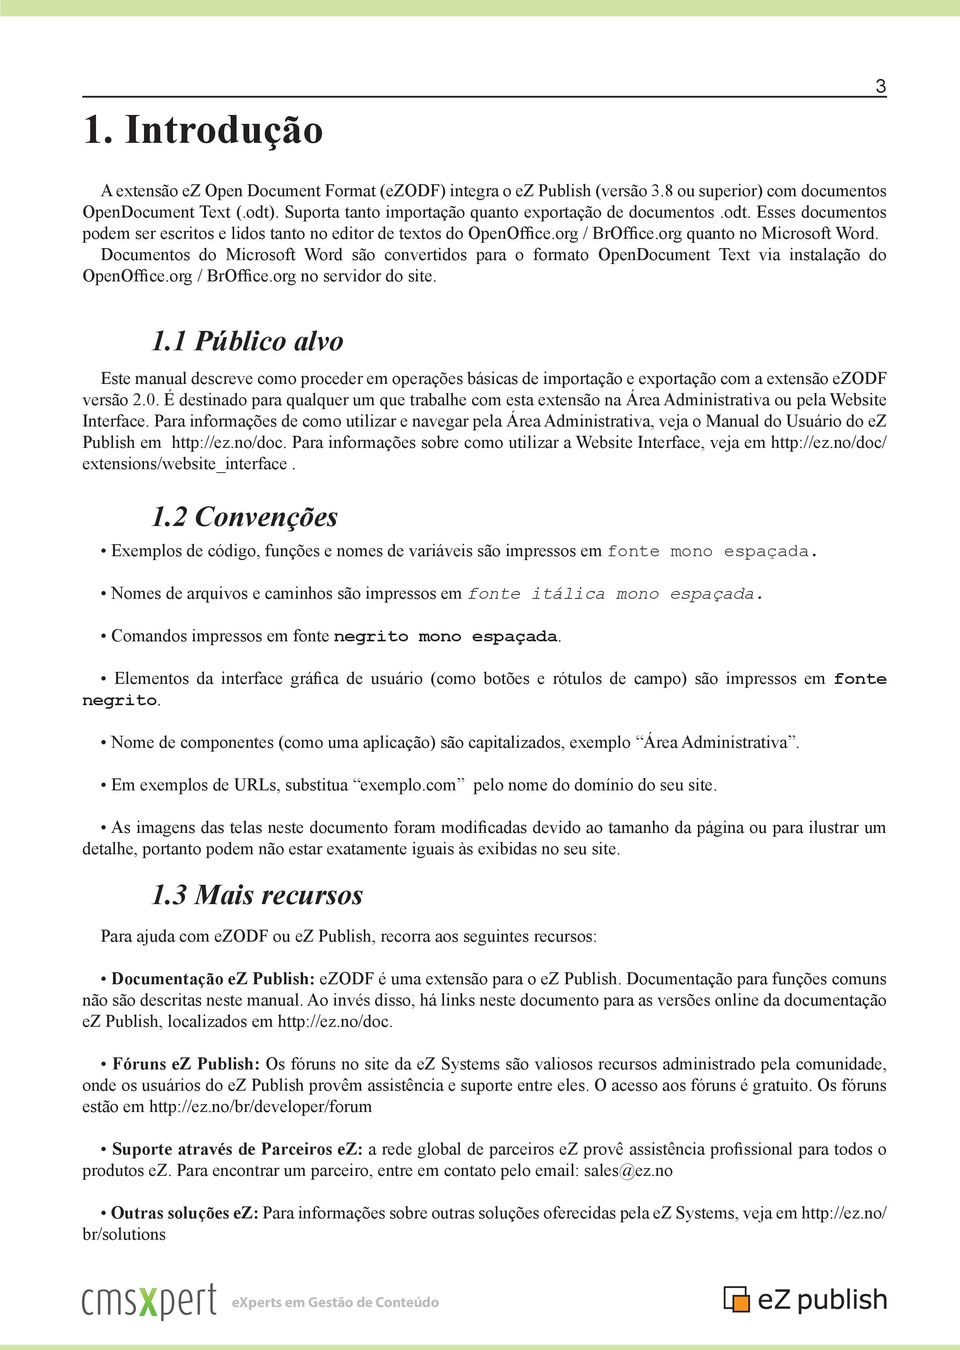 Documentos do Microsoft Word são convertidos para o formato OpenDocument Text via instalação do OpenOffice.org / BrOffice.org no servidor do site. 1.